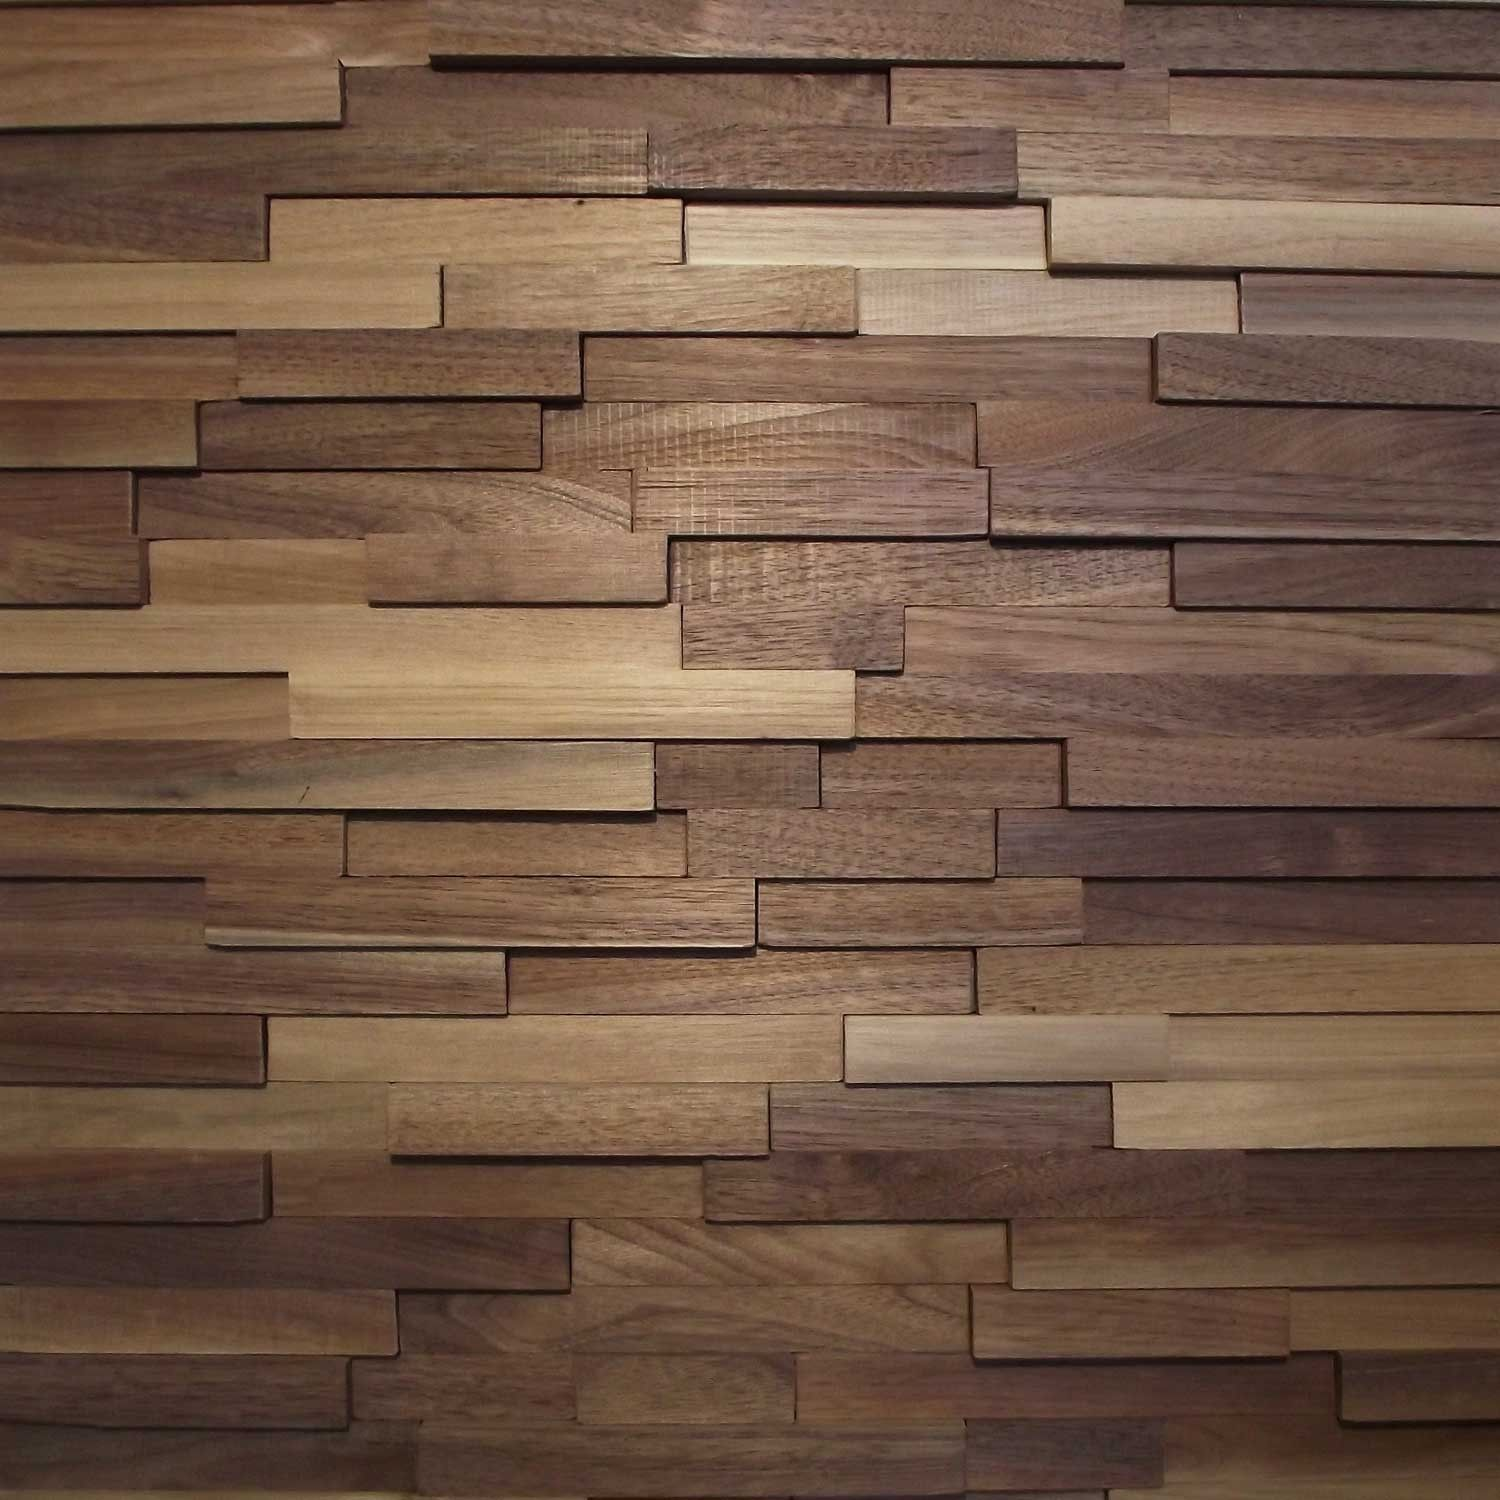 Contemporary Wood Paneling For Walls : Modern wood wall paneling ideas make up